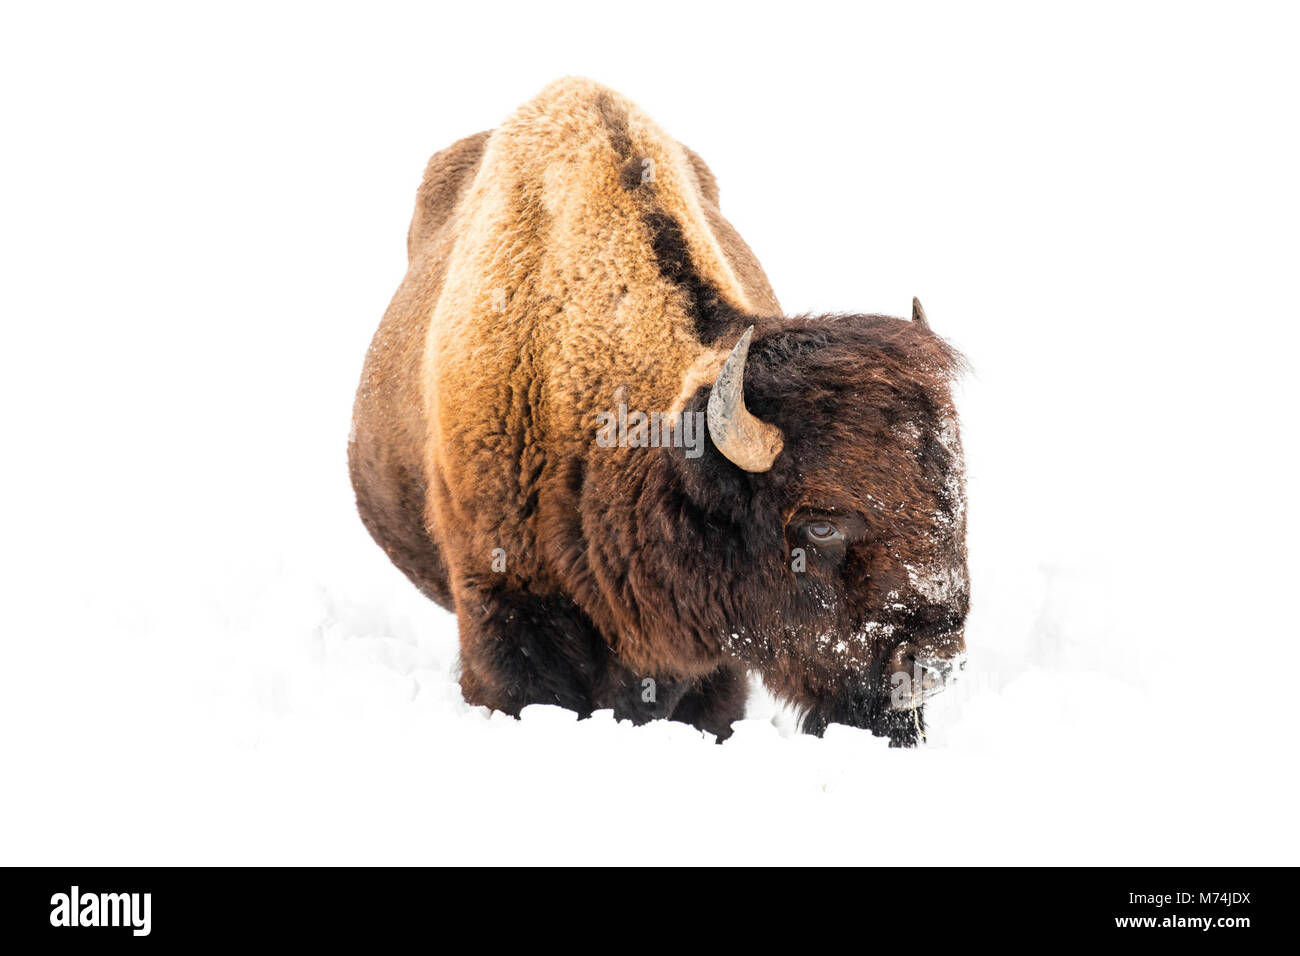 Bison resting in the snow in Lamar Valley. - Stock Image